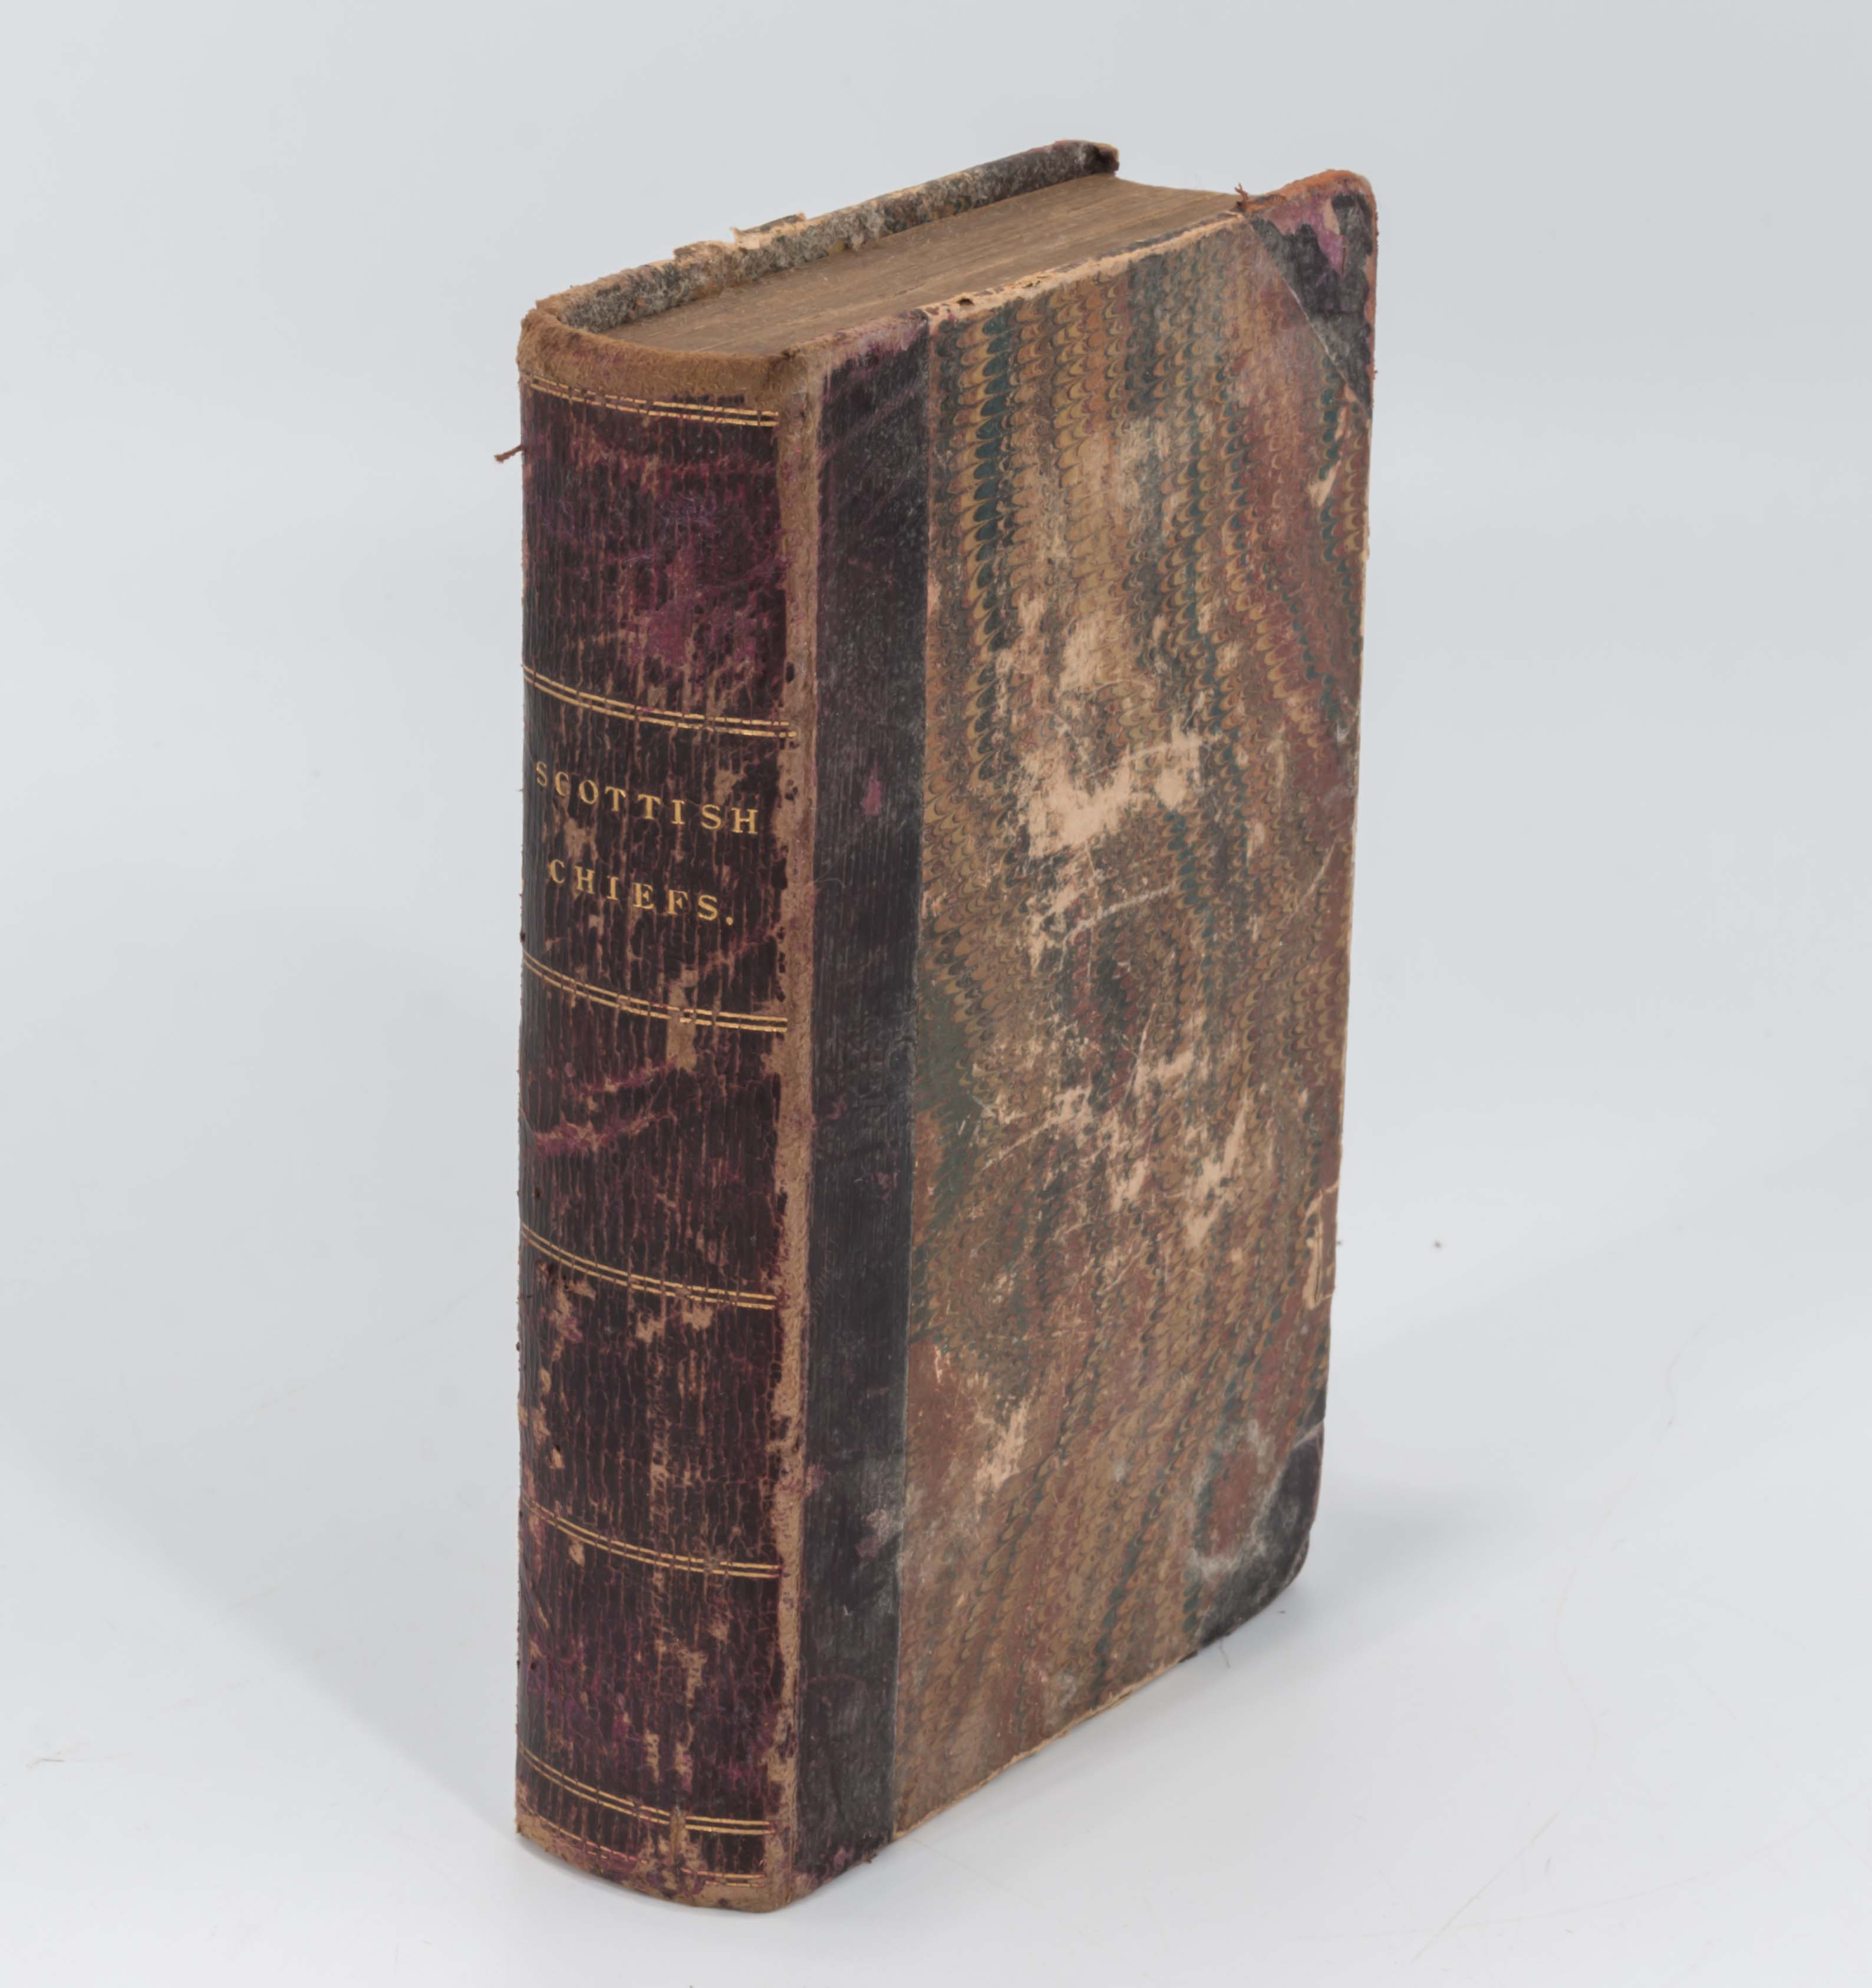 Lot 47A - An edition of Scottish Chiefs by Miss Jane Porter 1855